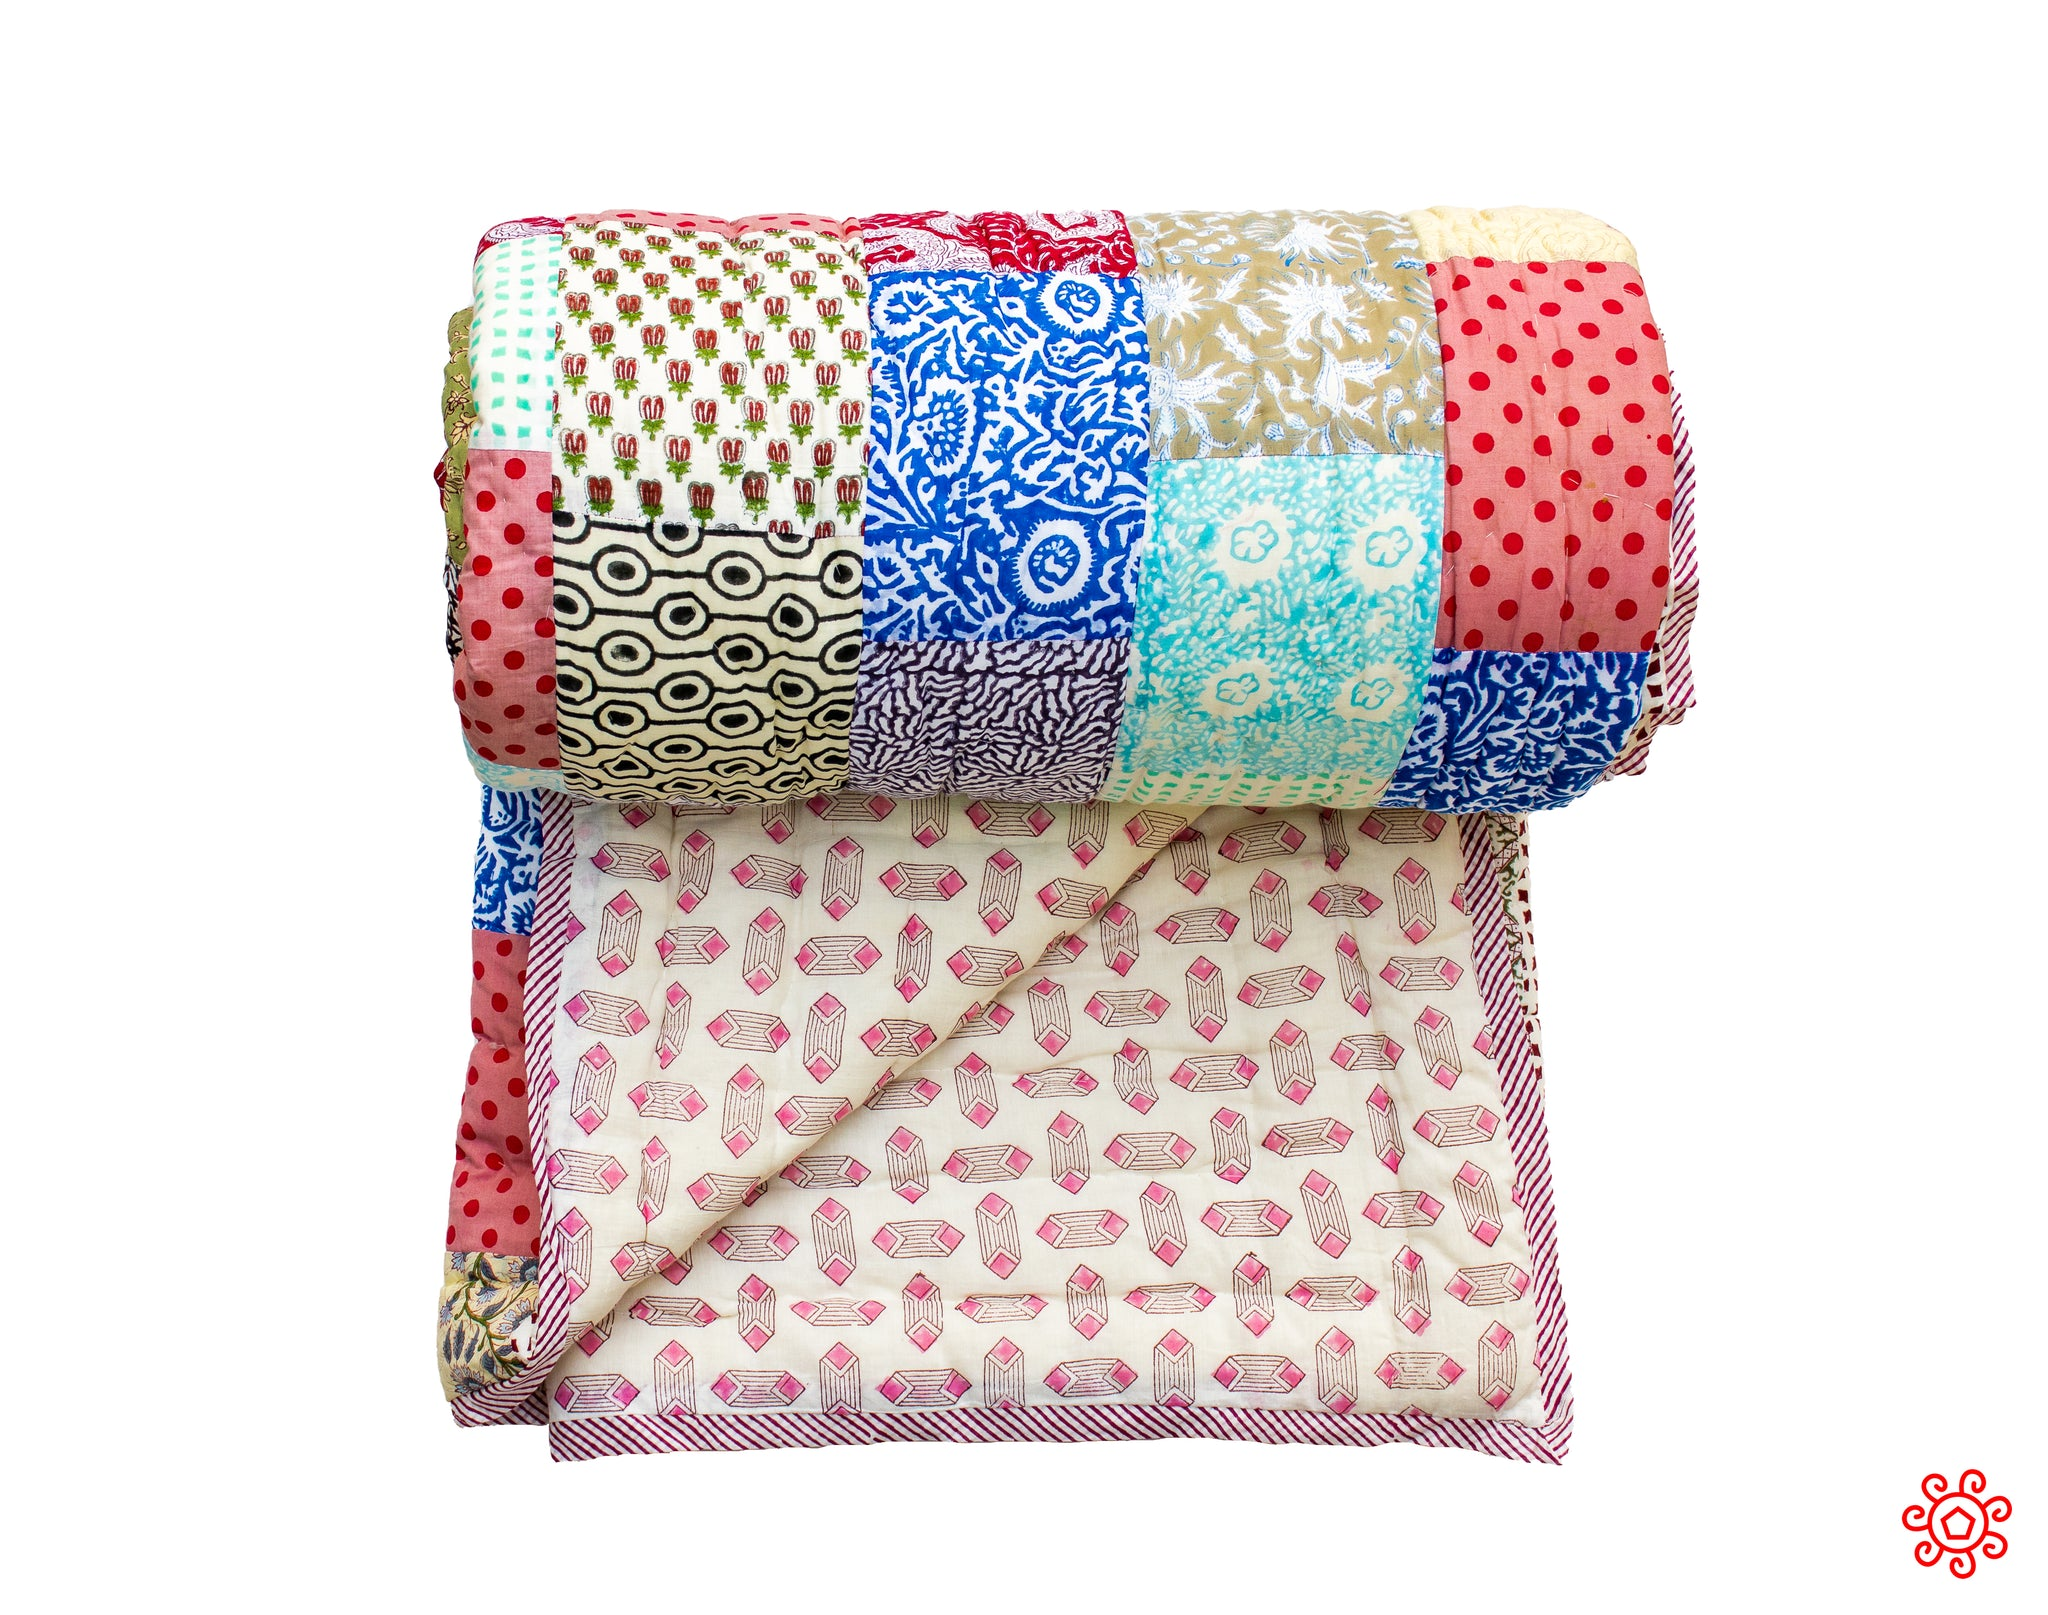 All New Roysha 2020 Quilt Collection - 100% Handmade Queen Patchwork Quilt QPW-223